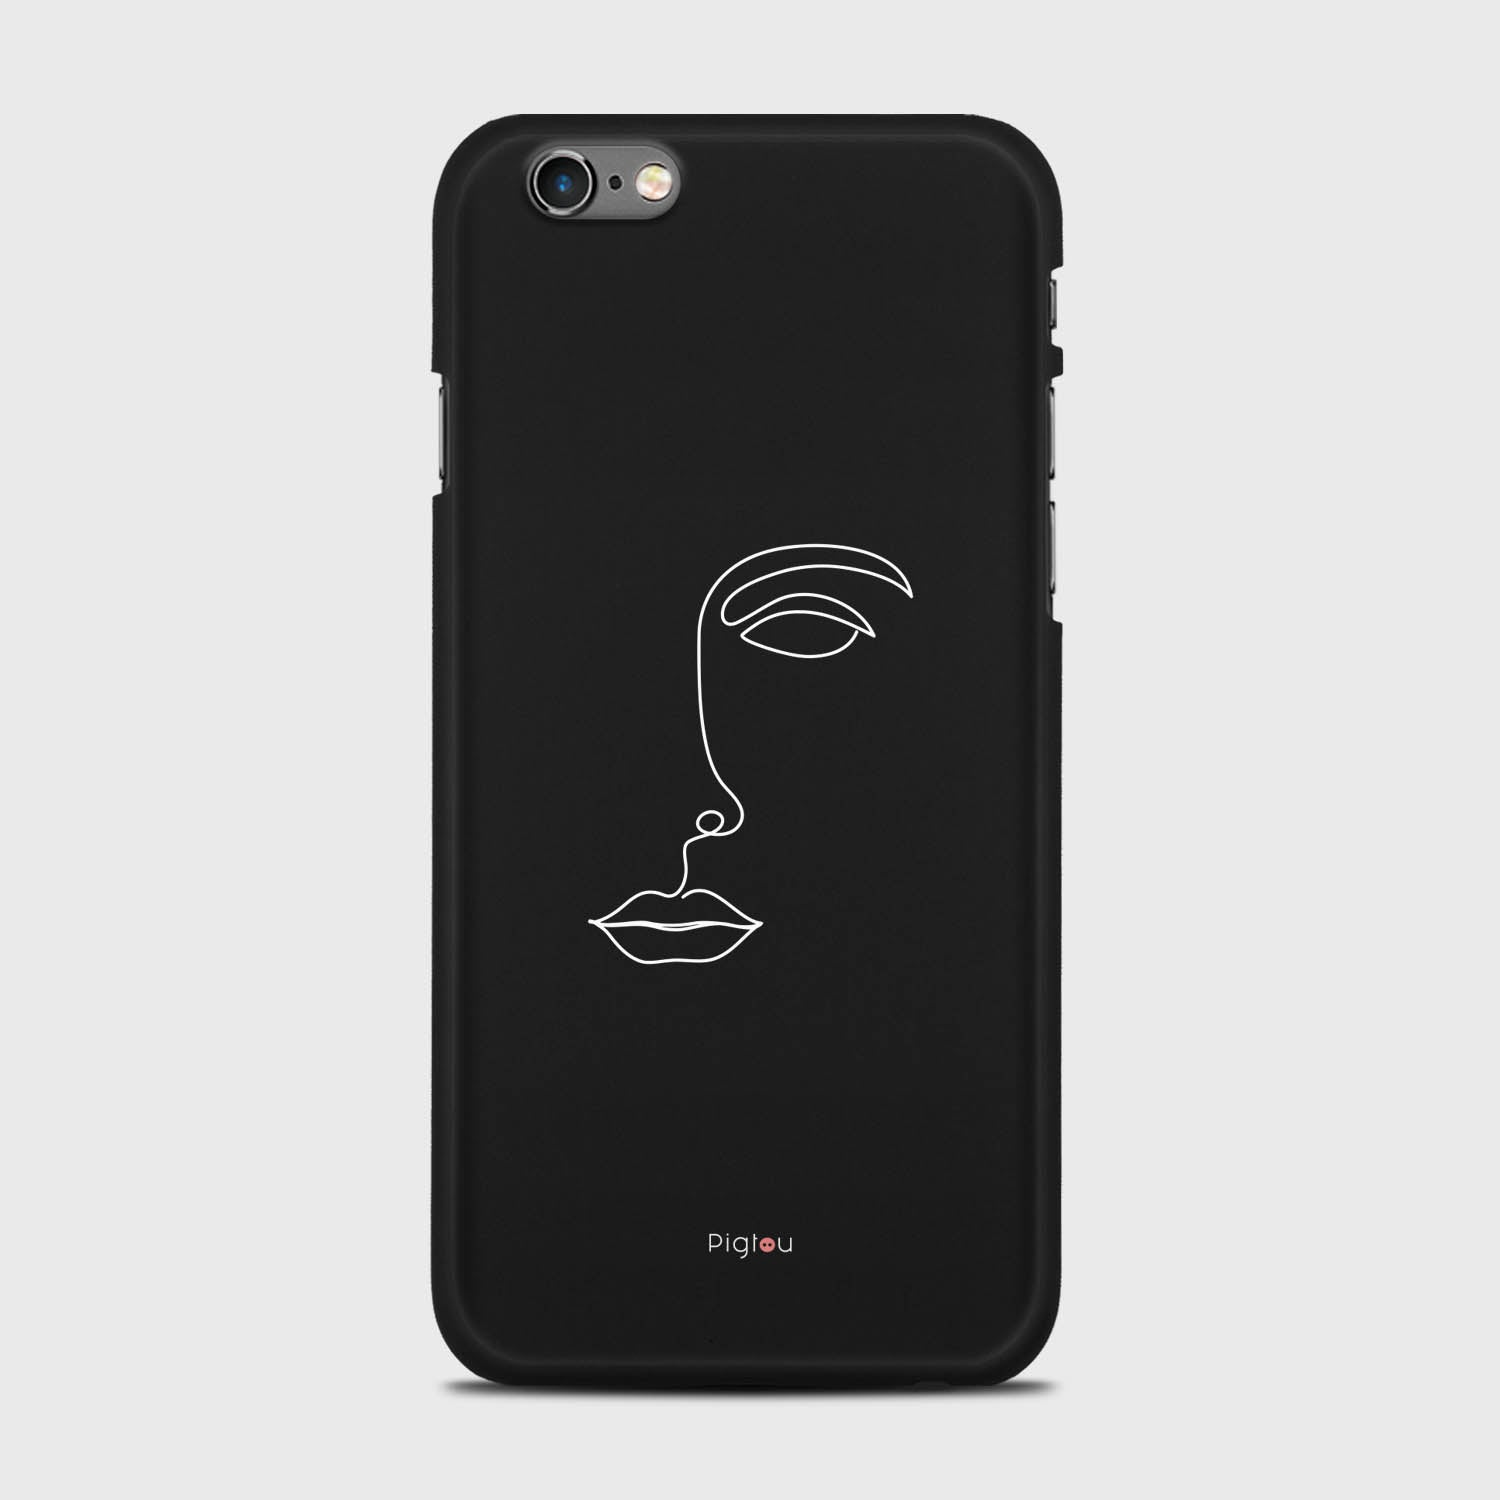 Silhouette De Visage Coque Iphone 6